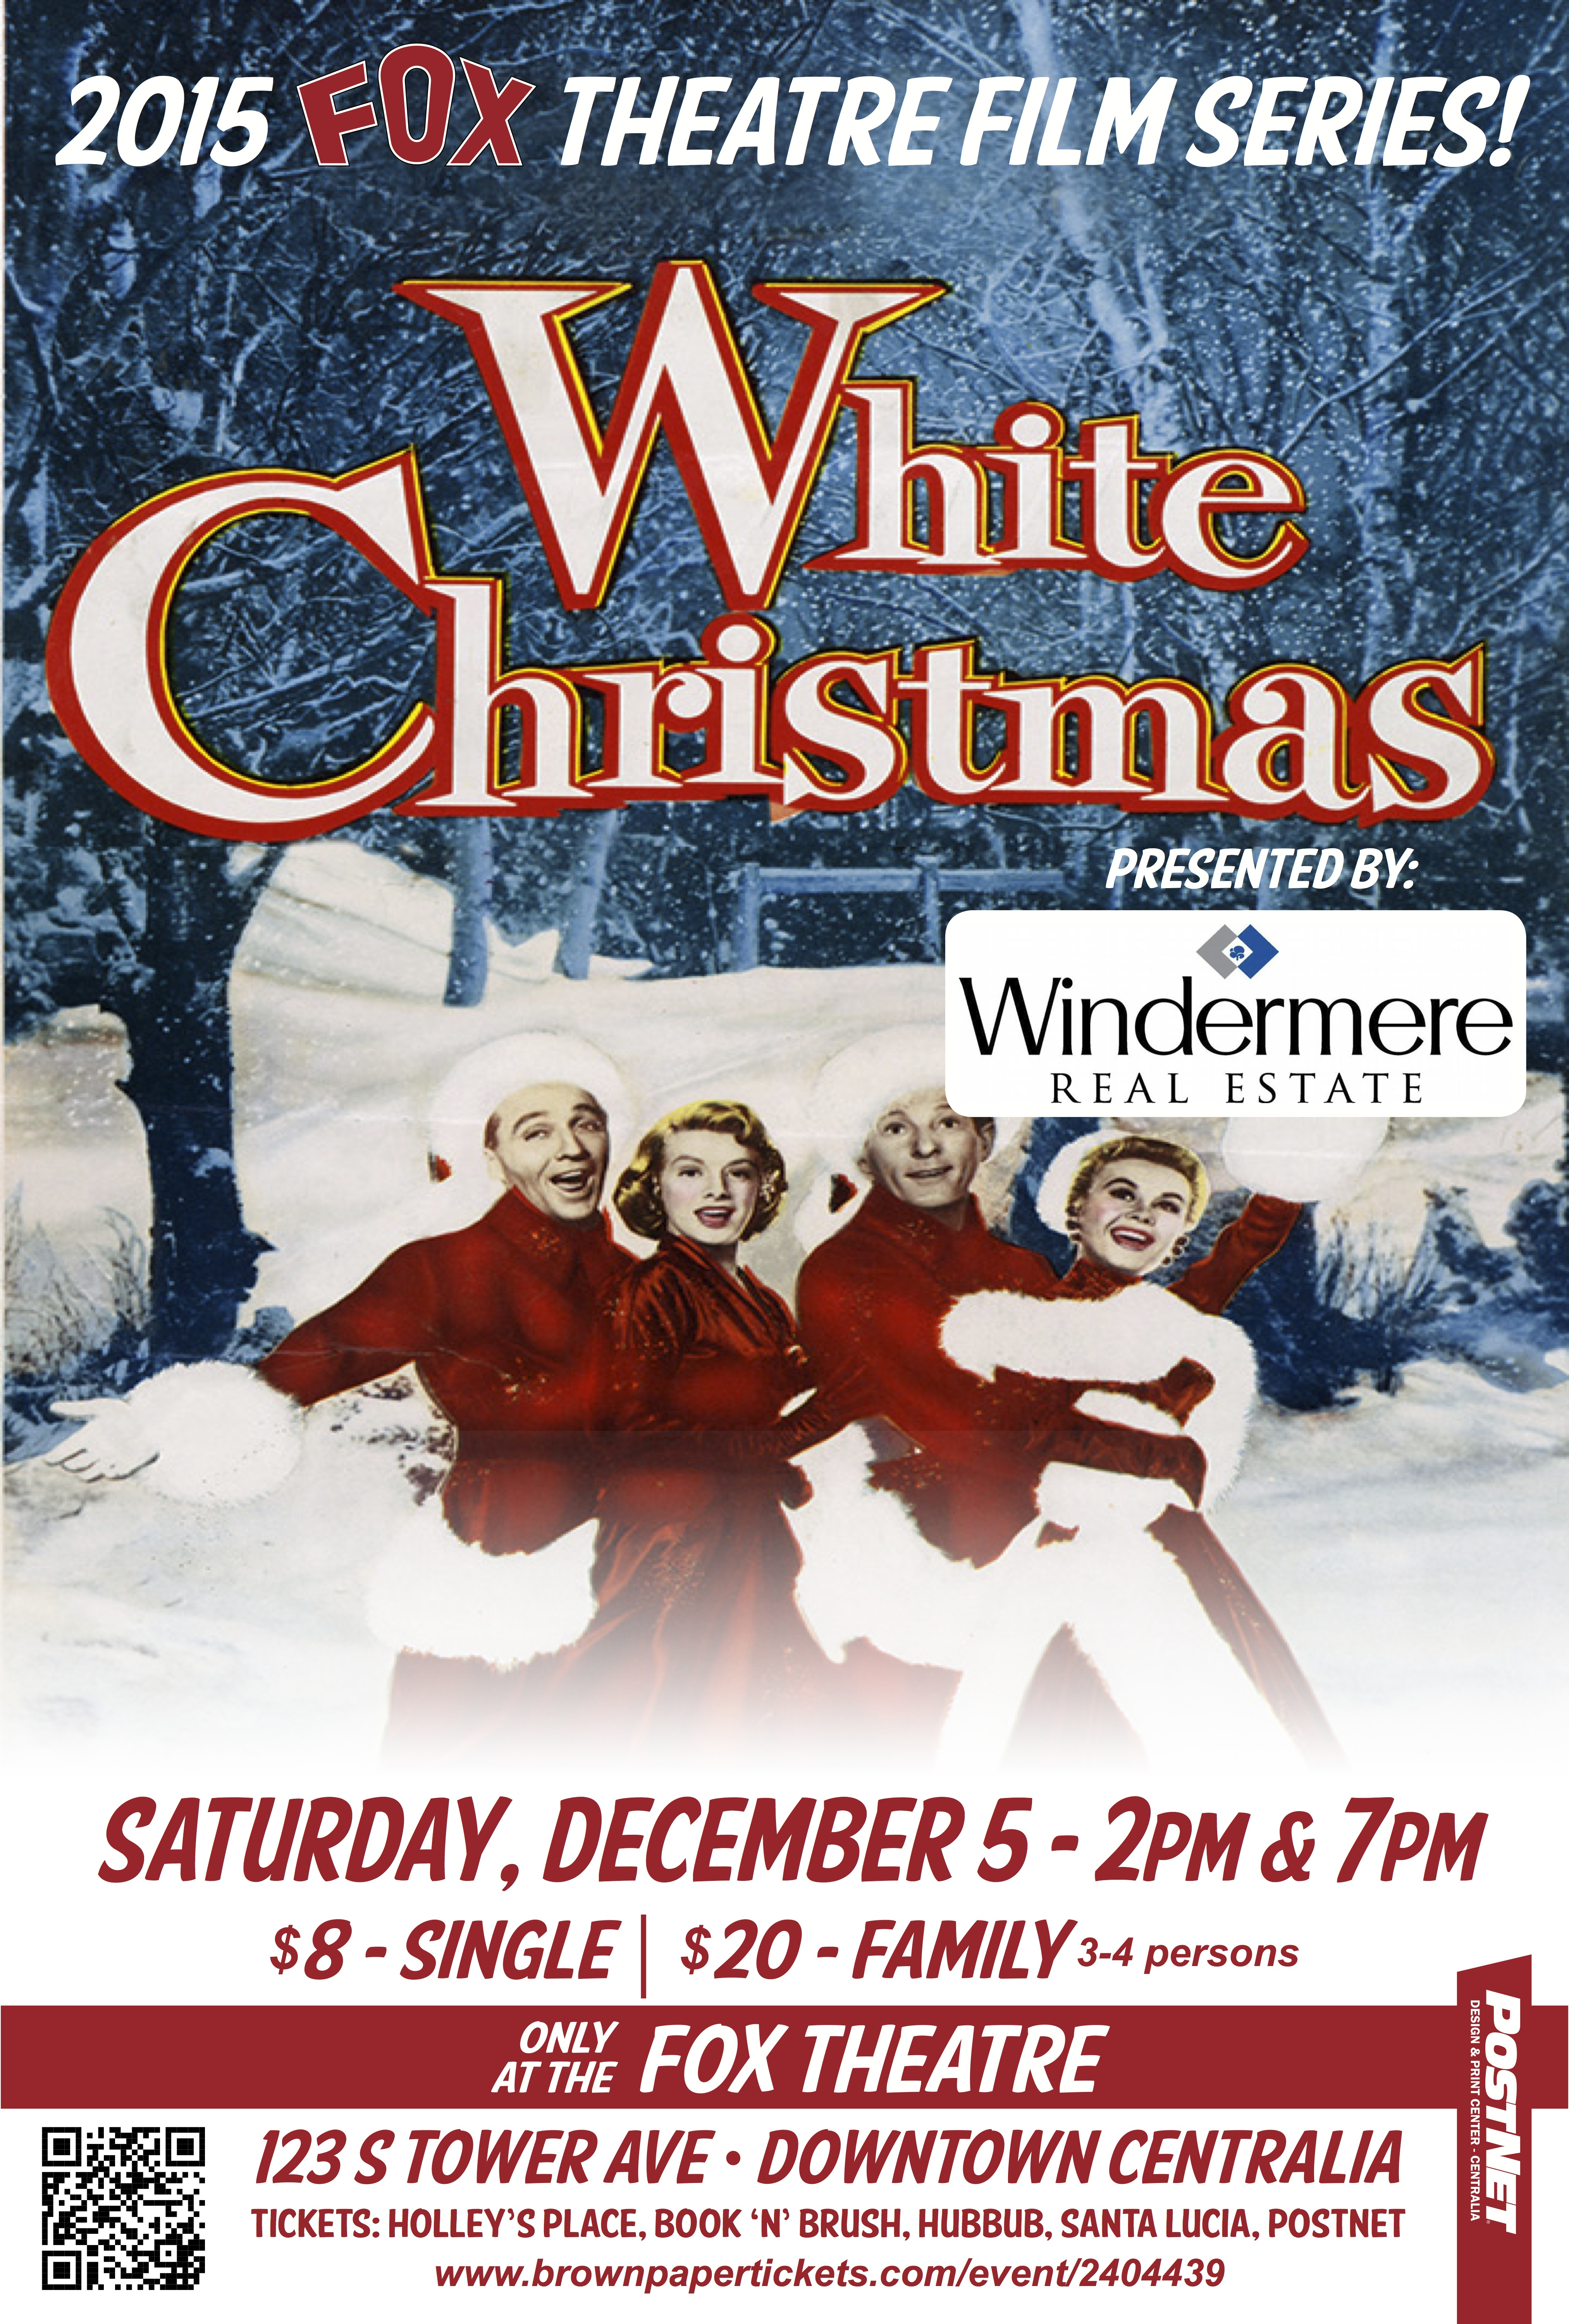 December Fox theatre film series features White Christmas ...